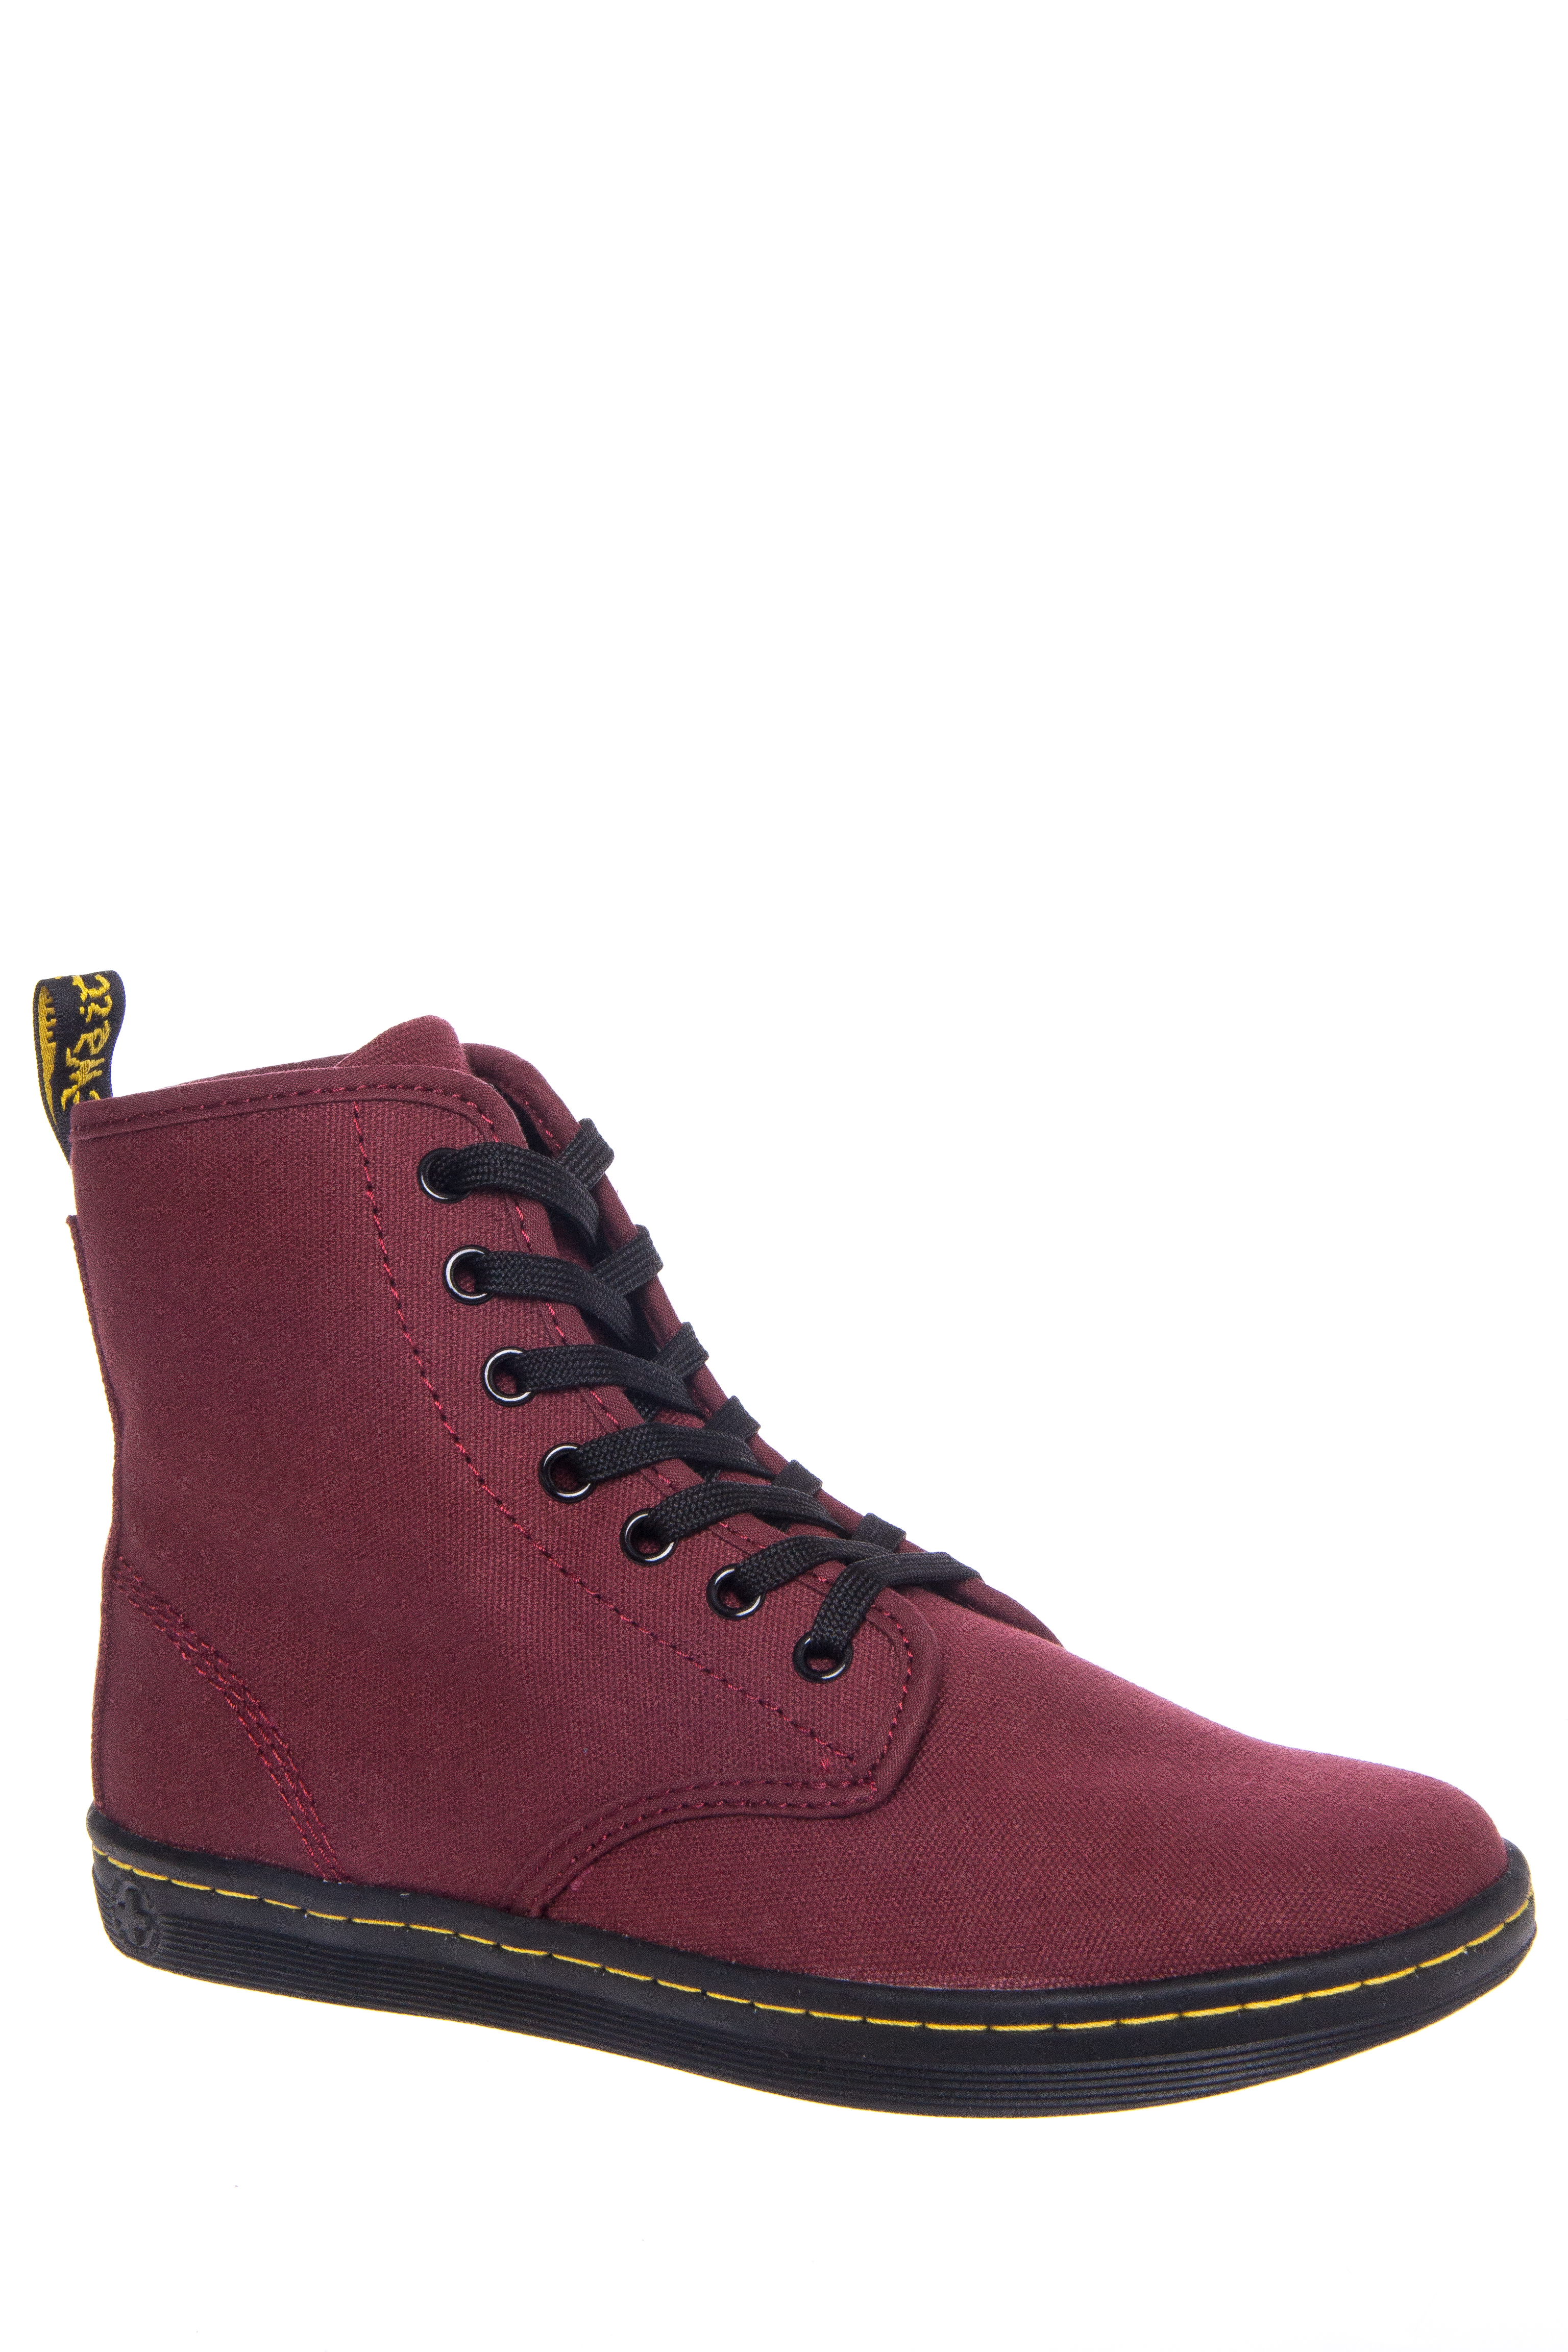 Dr. Martens Shoreditch Canvas High Top Sneakers - Cherry Red Canvas